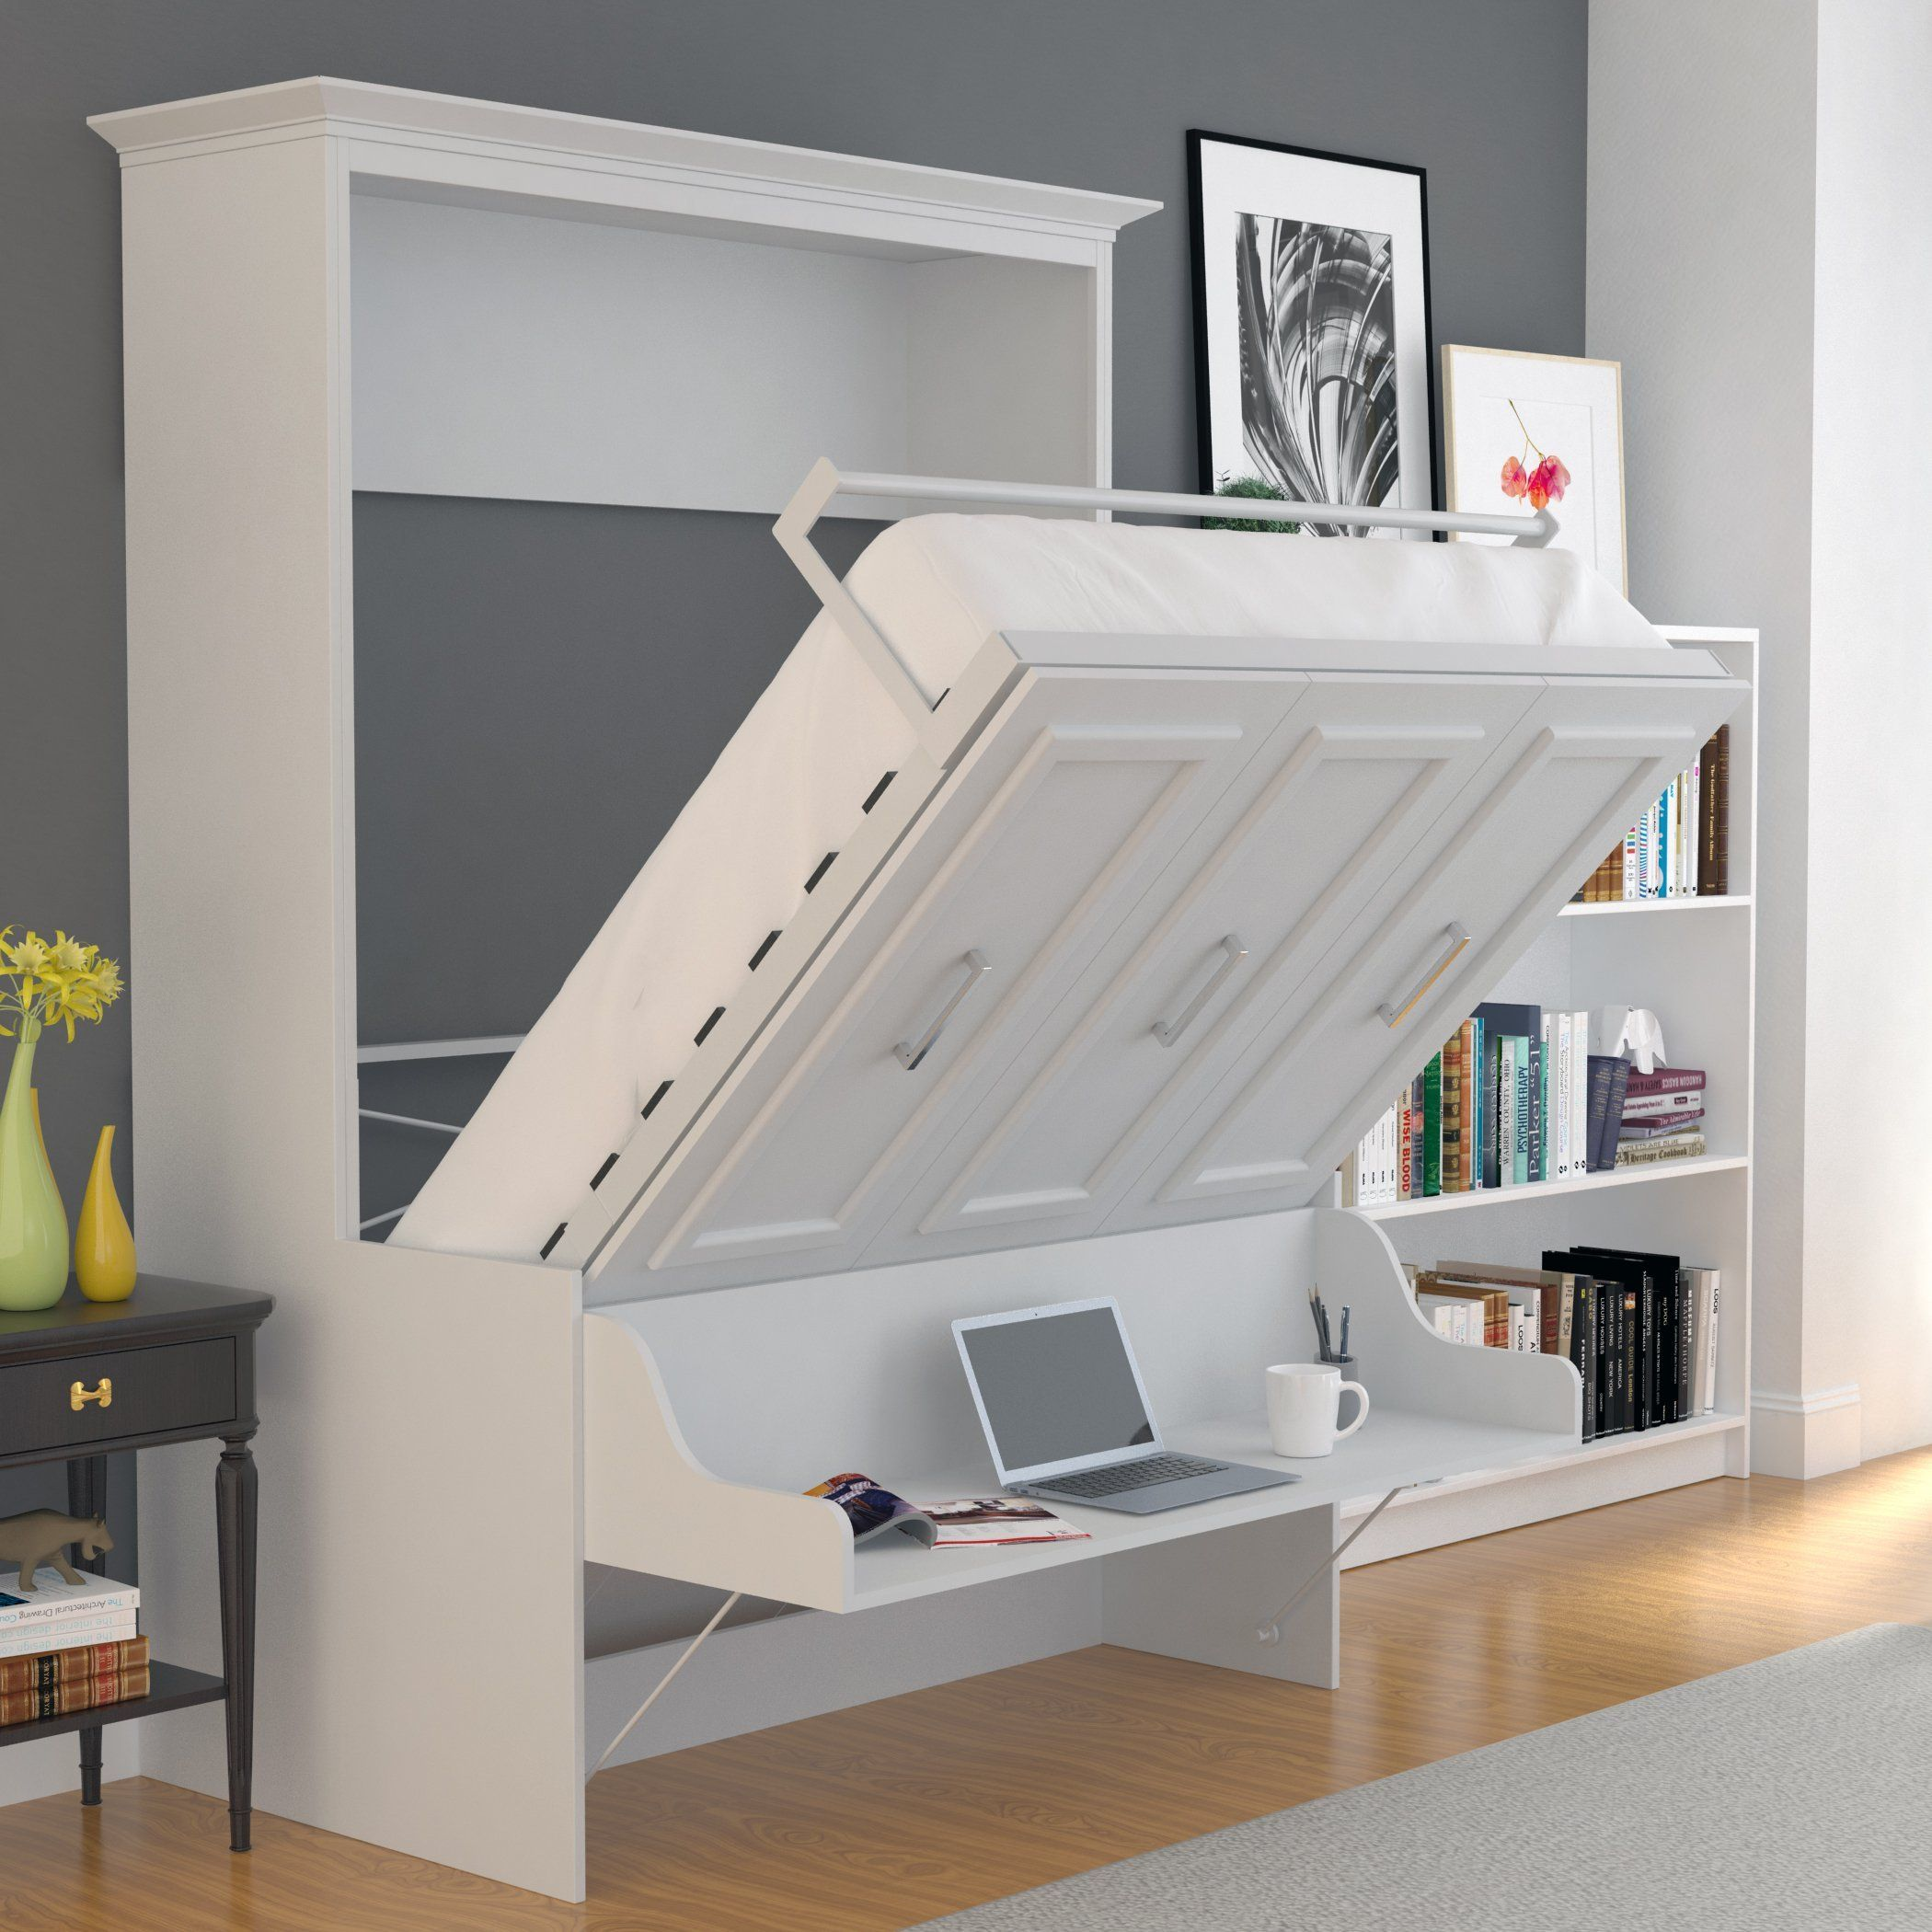 Best Queen Murphy Bed With Desk Shop For Beautiful White 400 x 300